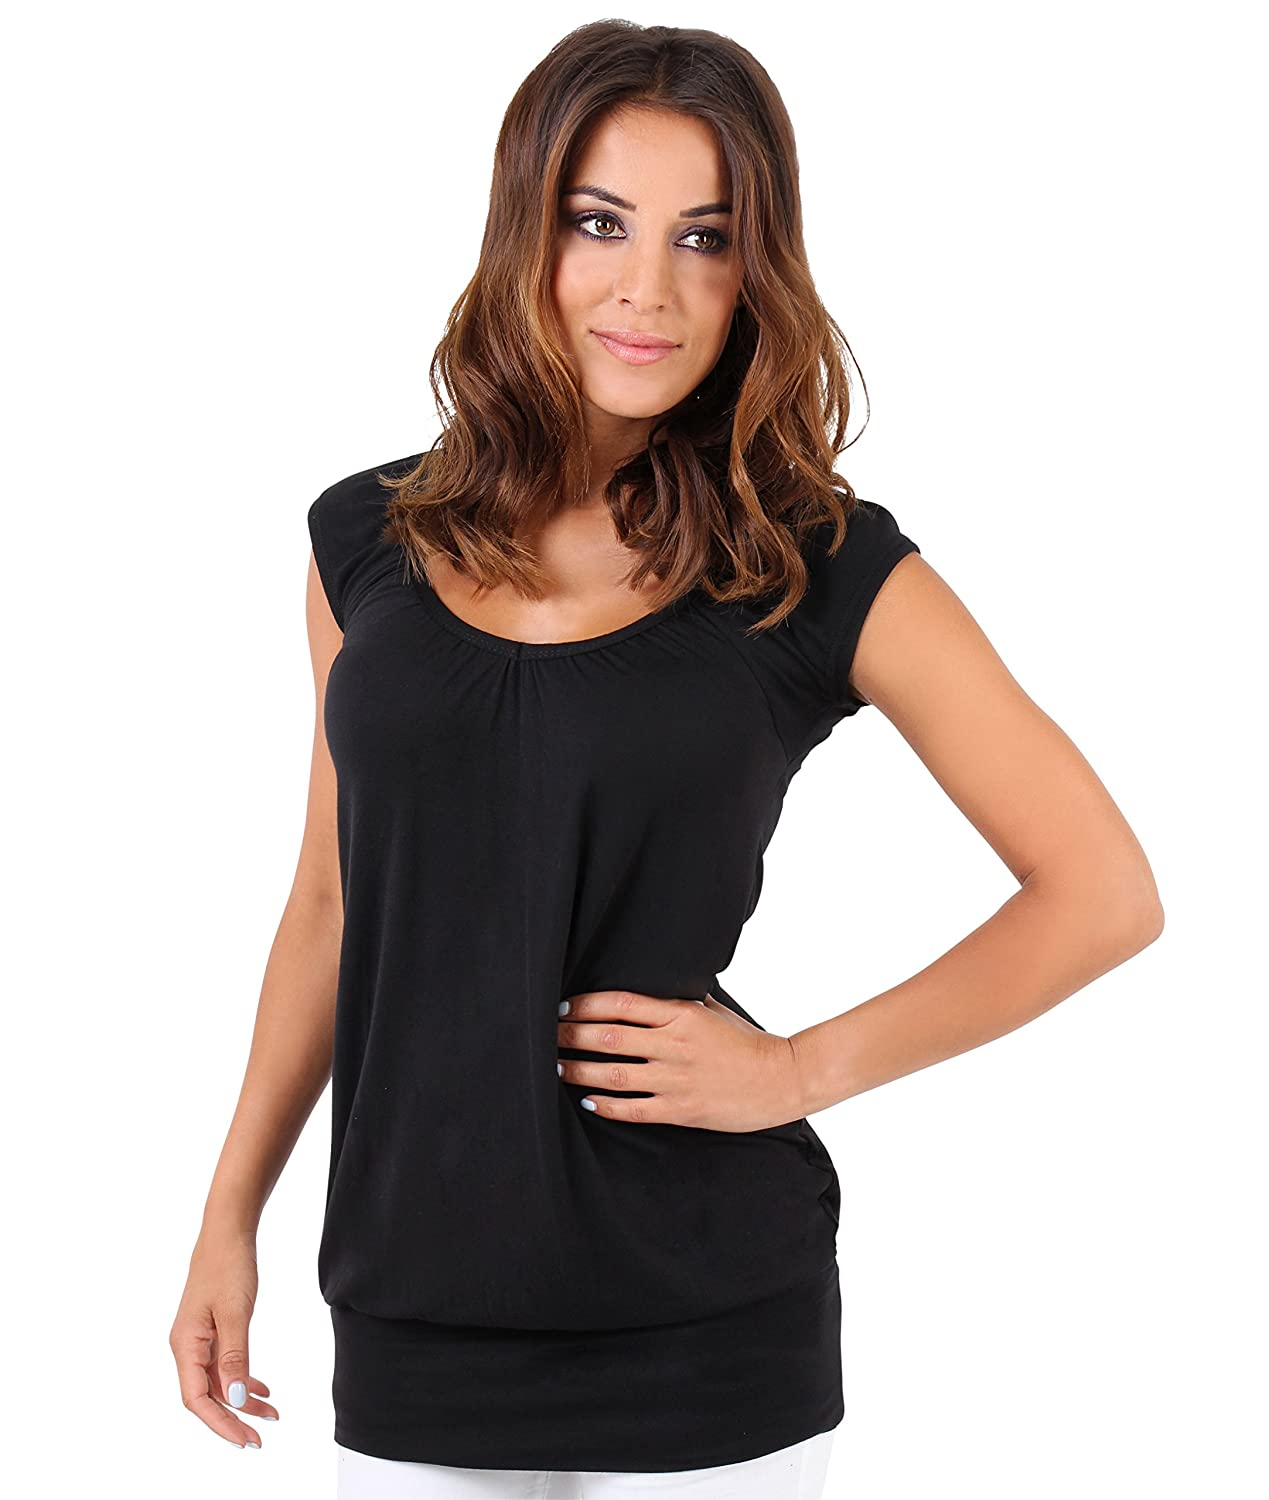 KRISP Damen Basic Longshirt Oberteil T-Shirt Top